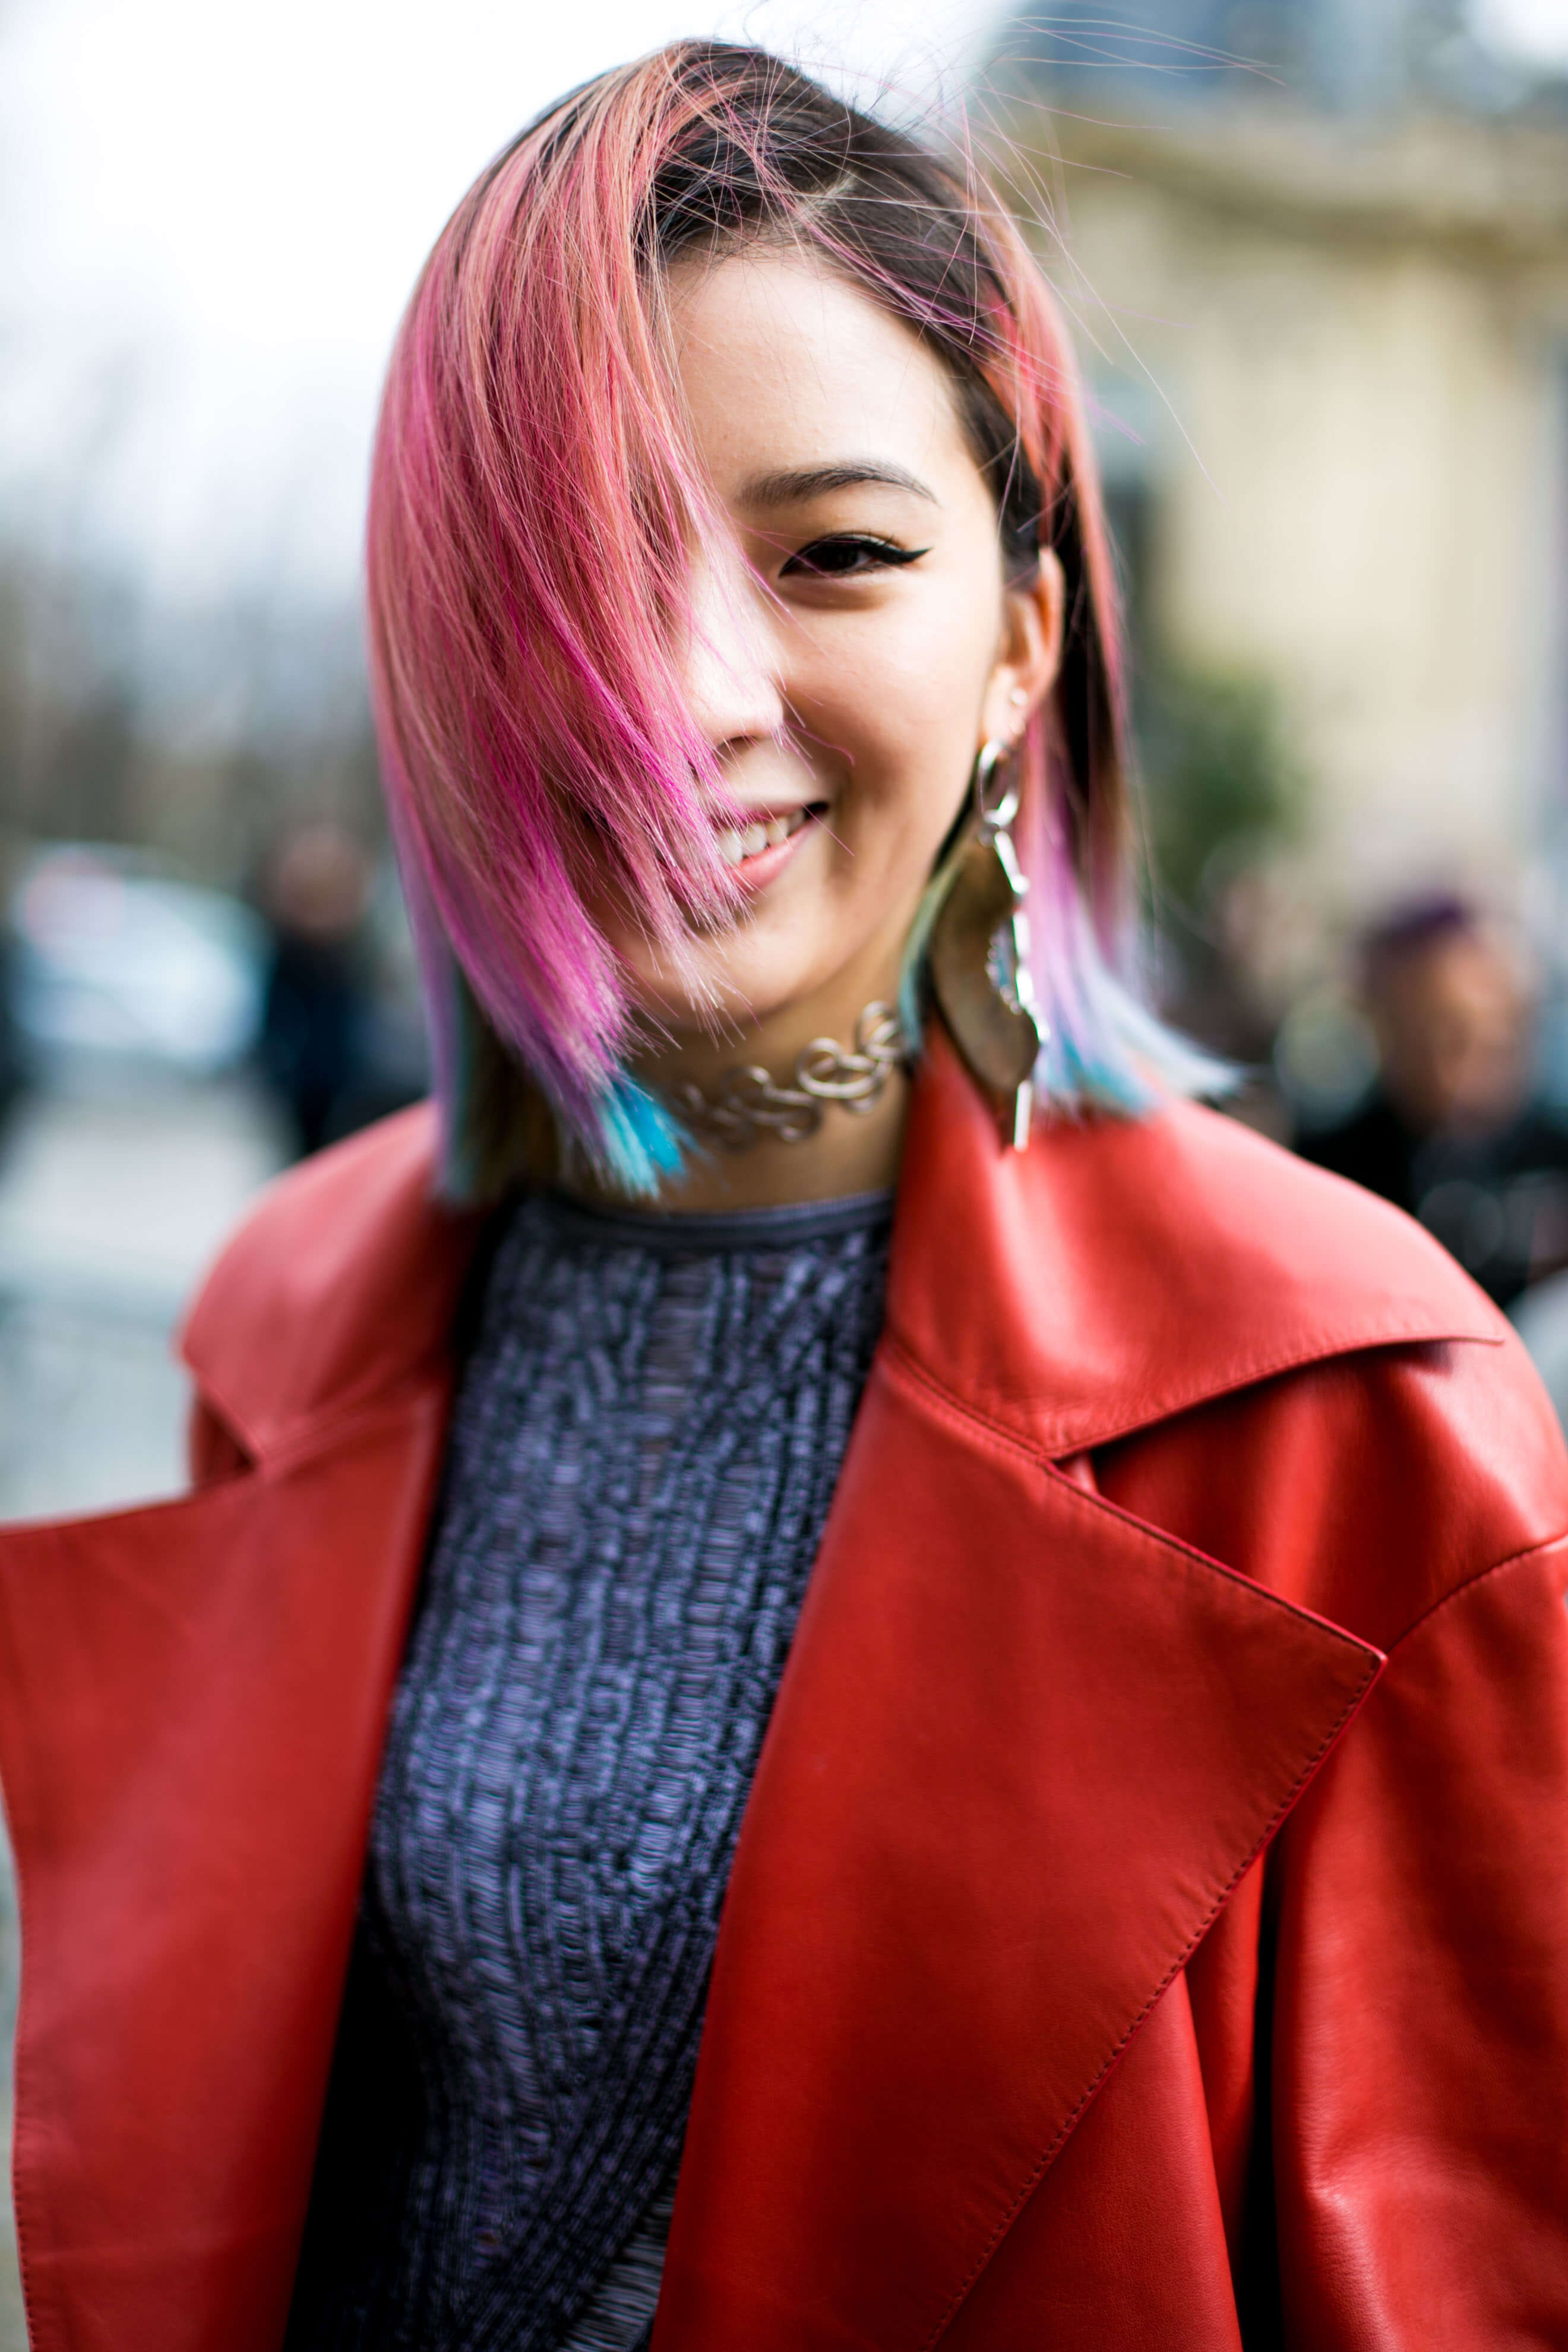 Pink hair ideas  Styles   shades to help you rock the look  e267f970f